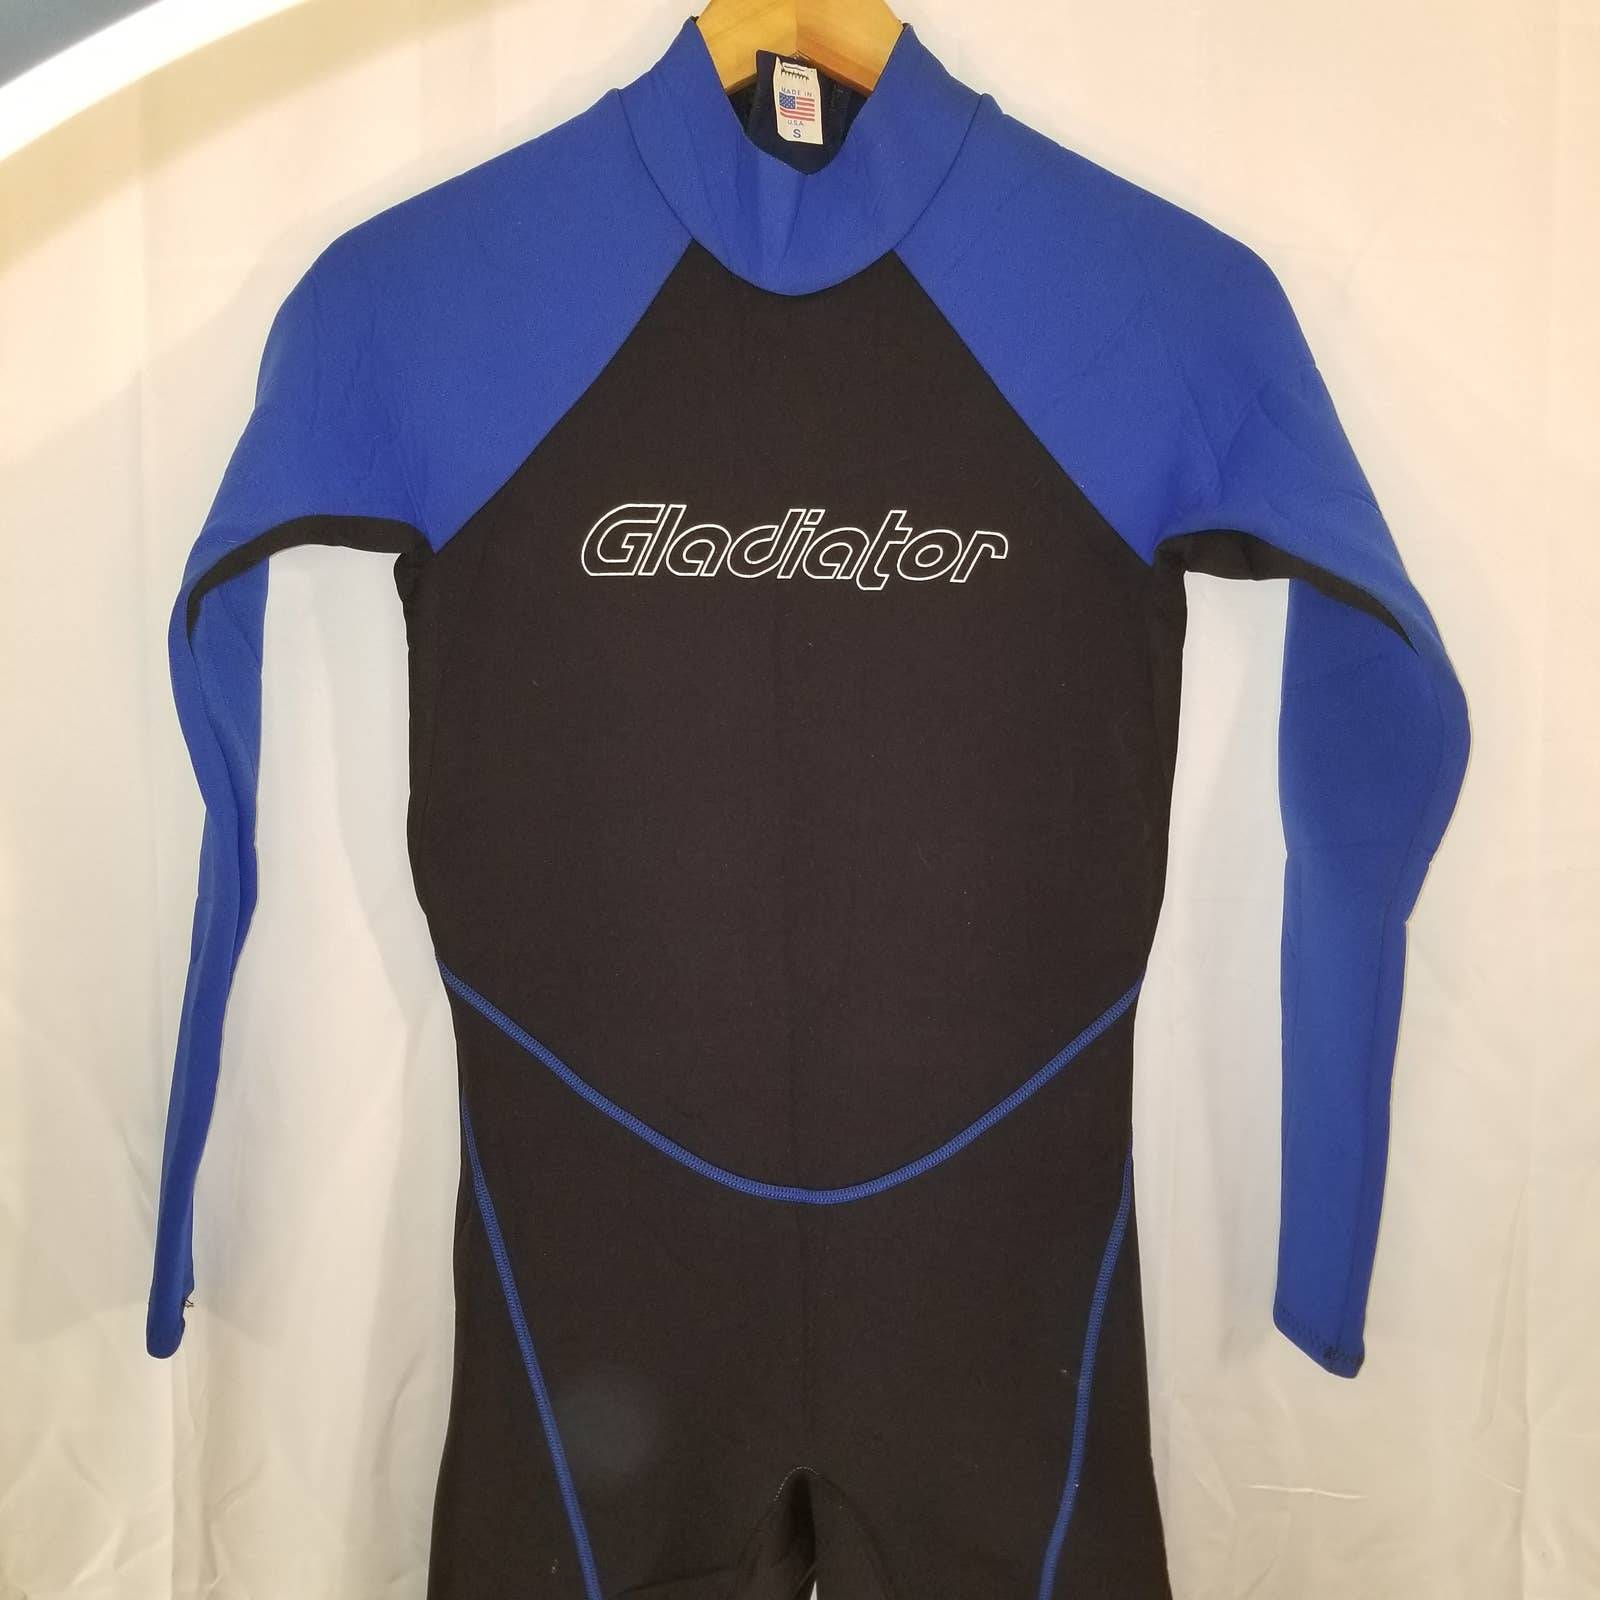 Gladiator Wet Suit Size Small